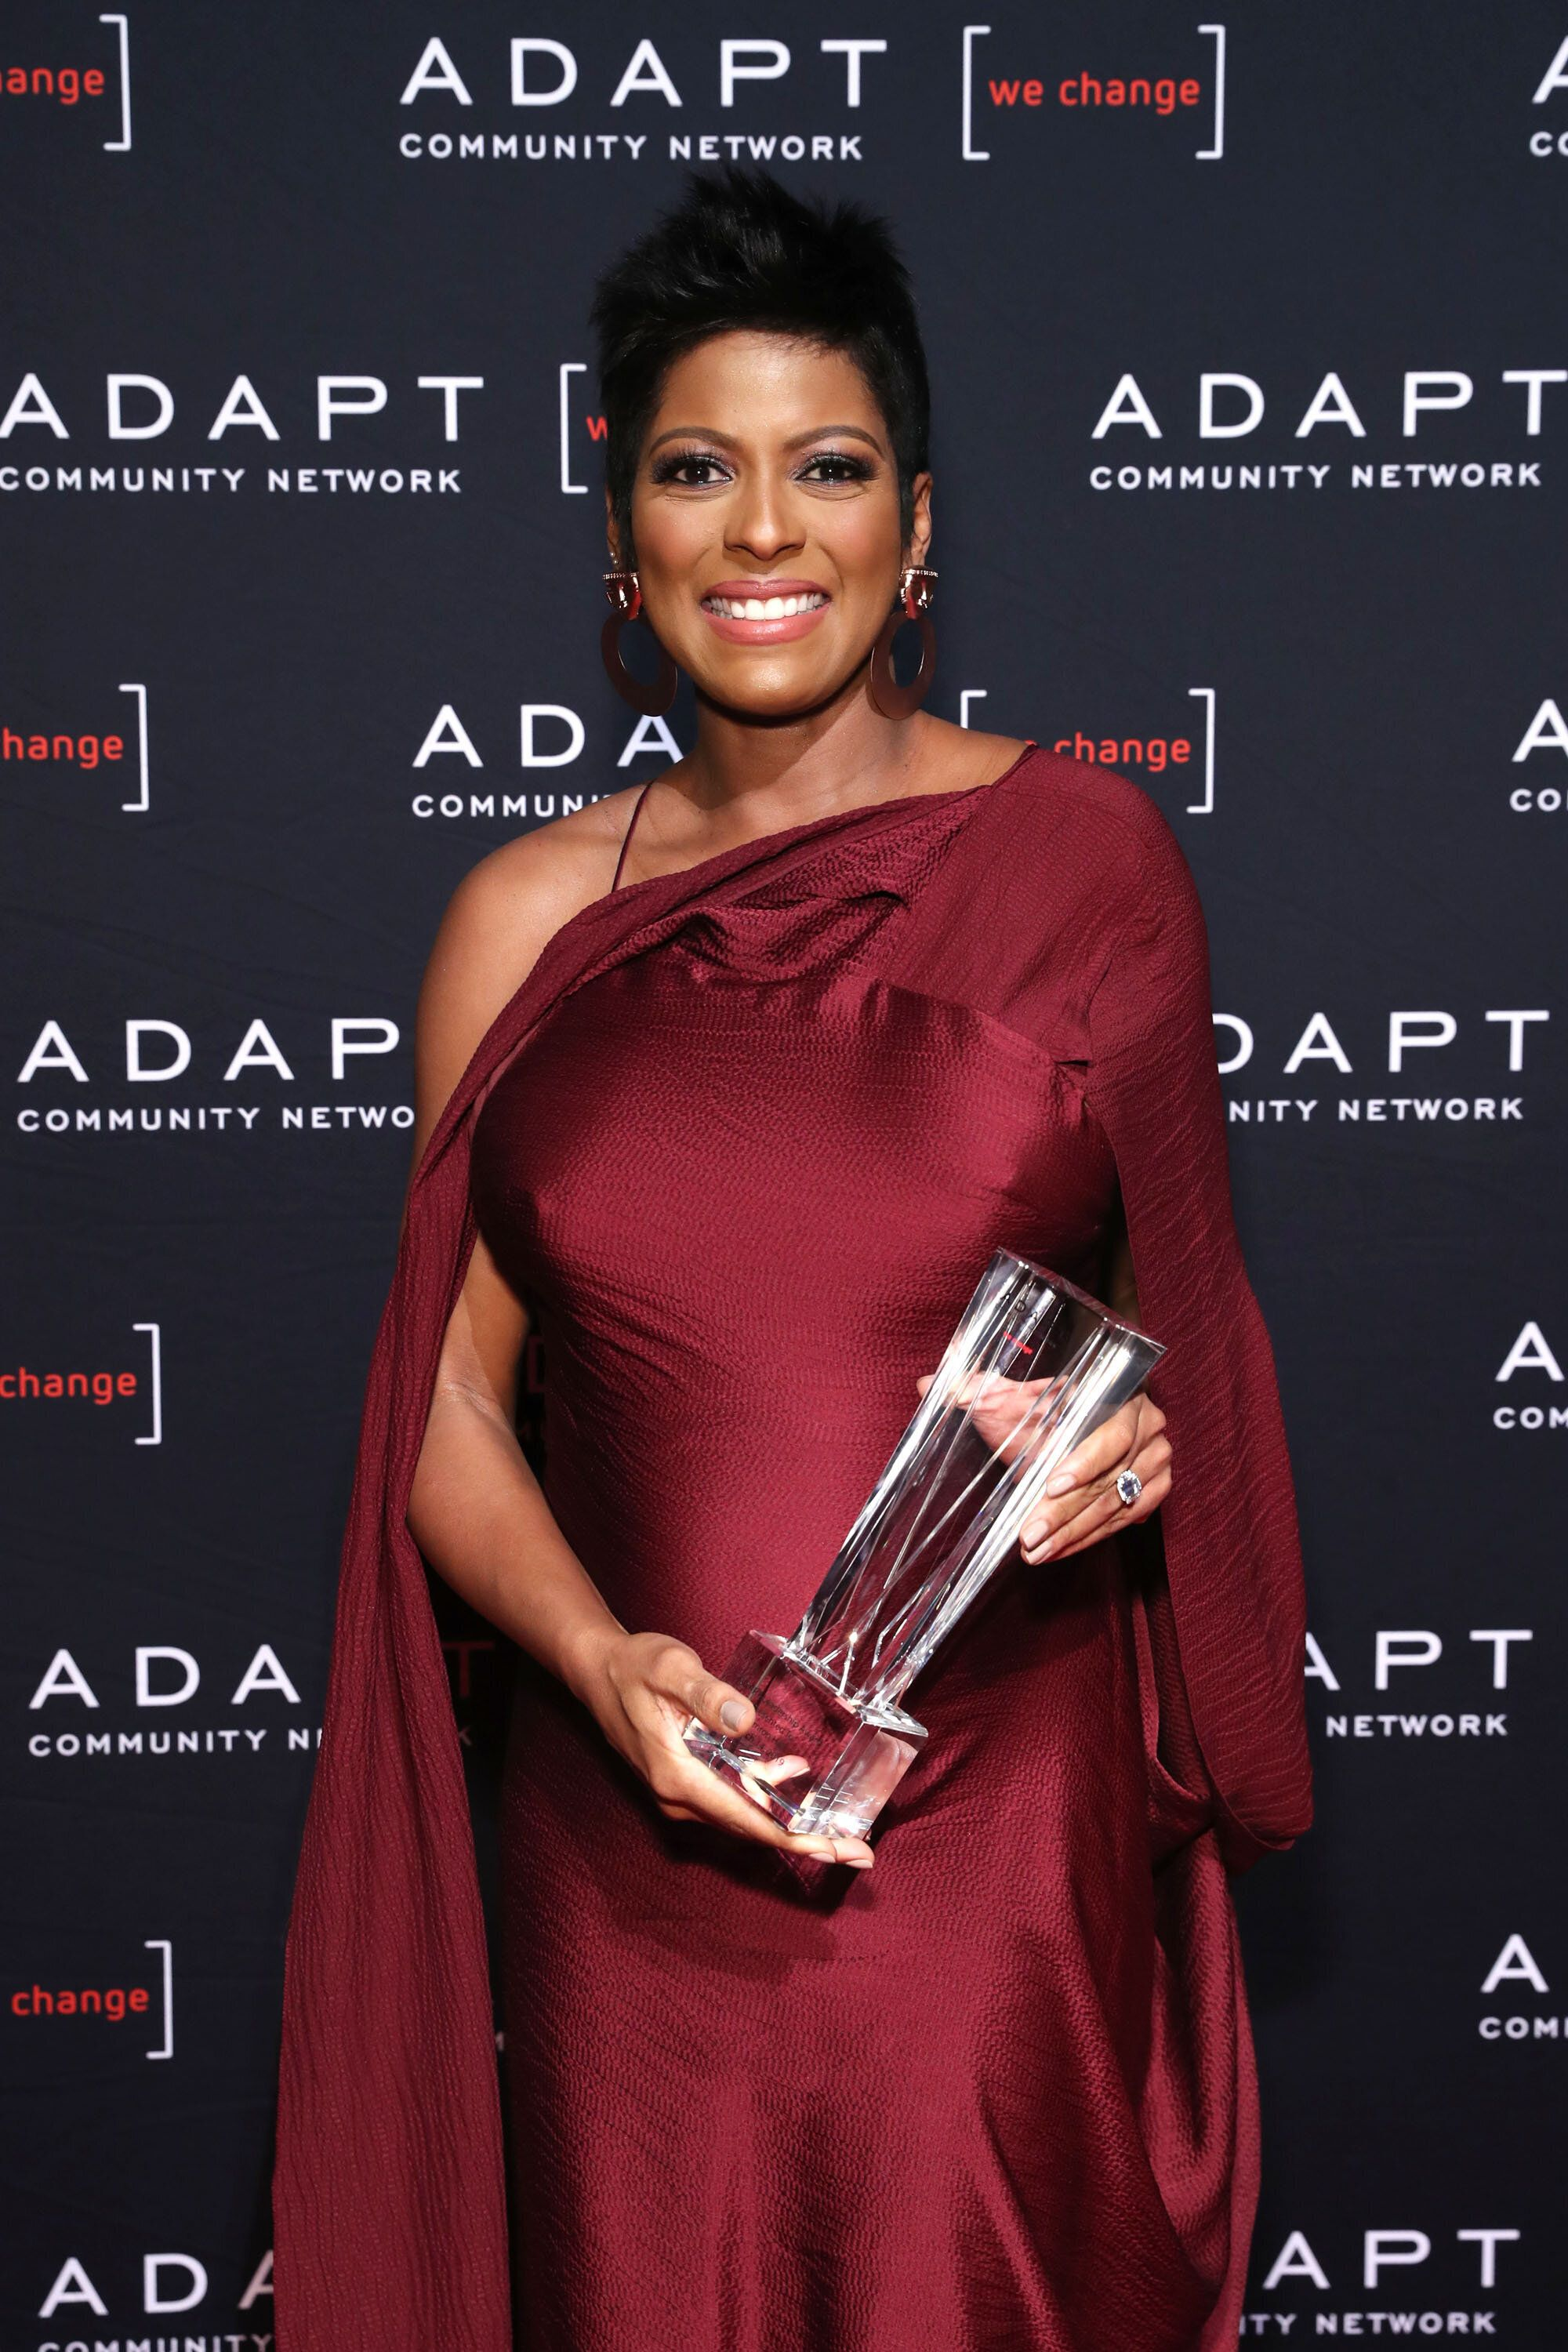 NEW YORK, NEW YORK - MARCH 14: 2019 ADAPT Leadership Award Nominee Tamron Hall poses with her award during the 2019 2nd Annual ADAPT Leadership Awards at Cipriani 42nd Street on March 14, 2019 in New York City. (Photo by Cindy Ord/Getty Images for ADAPT Leadership Awards )